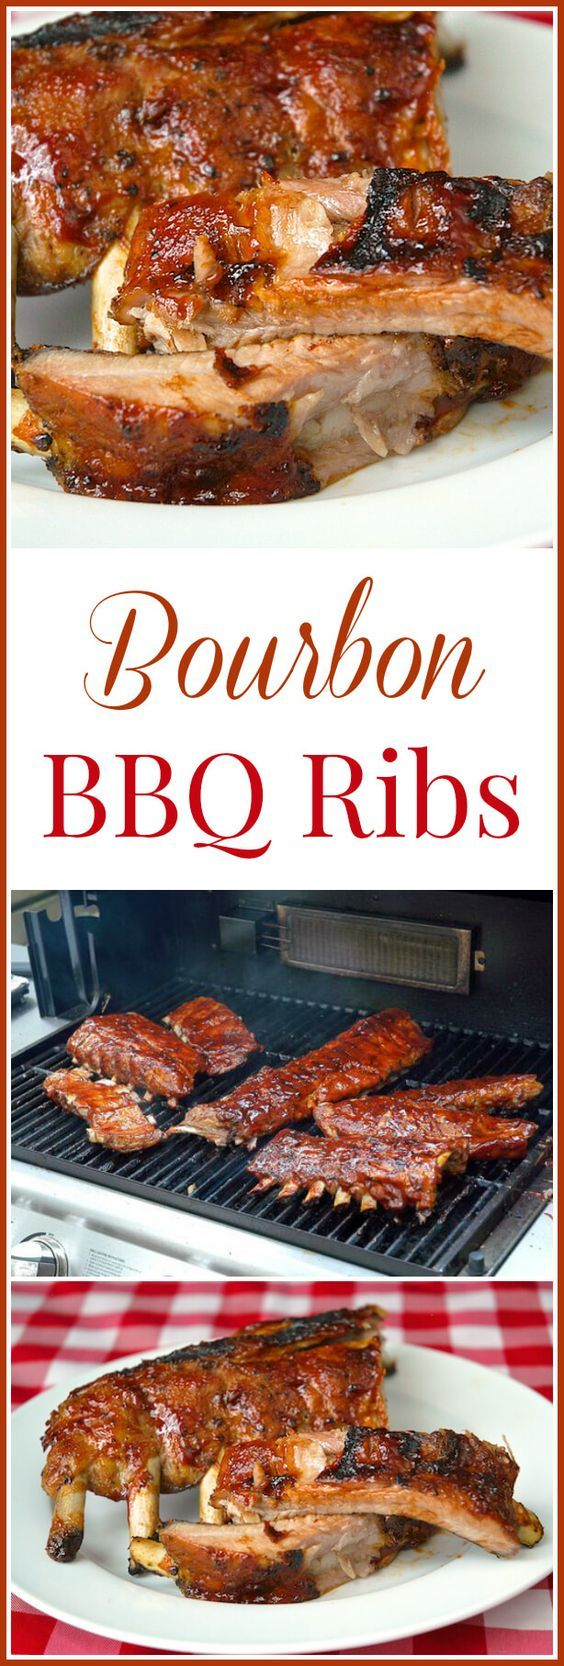 Bourbon Barbecue Ribs - Some tender, succulent ribs with a homemade Bourbon Barbecue Sauce.